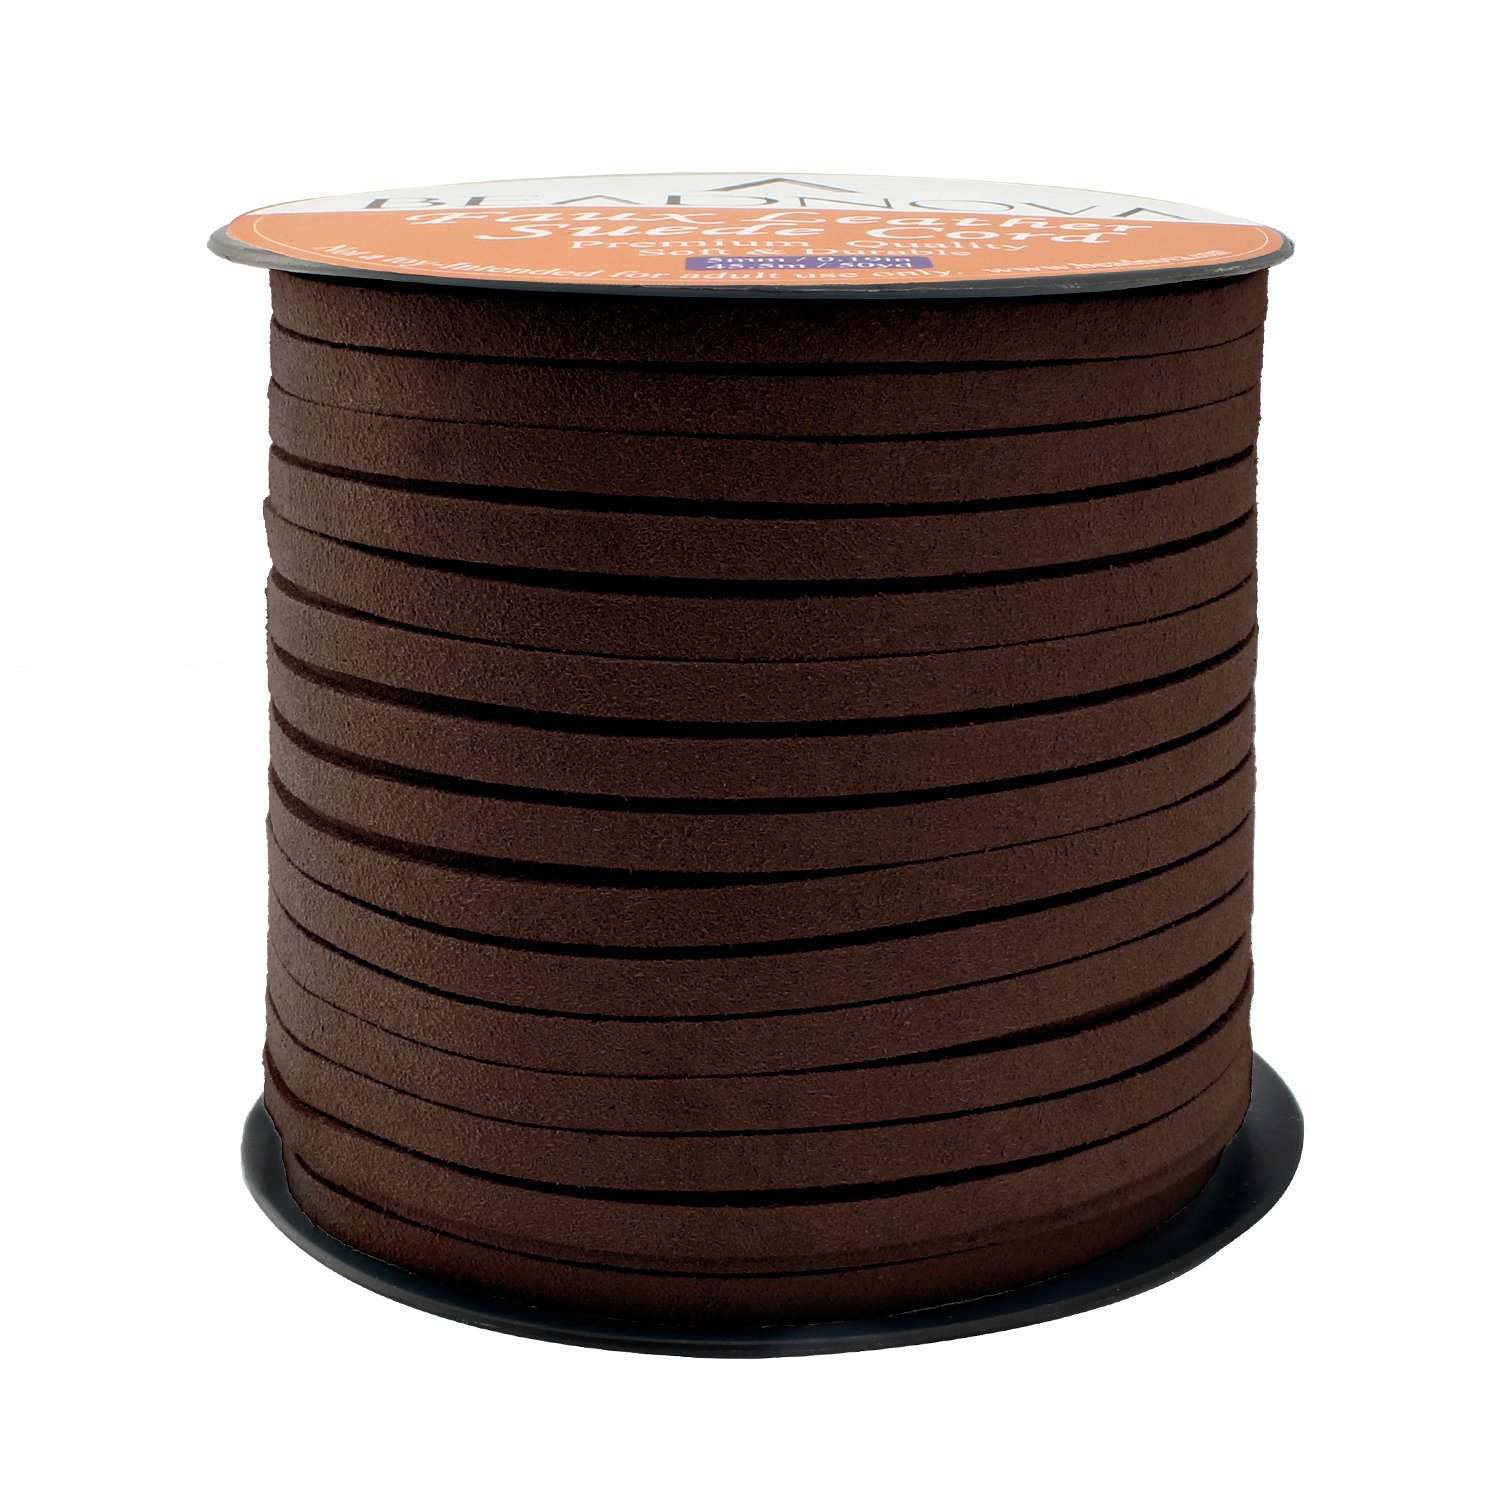 BEADNOVA 5mm Flat Leather Cord Faux Suede Cord 50 Yards Roll Spool for Necklace Bracelet Jewelry Making (Medium Brown) BCACS26089